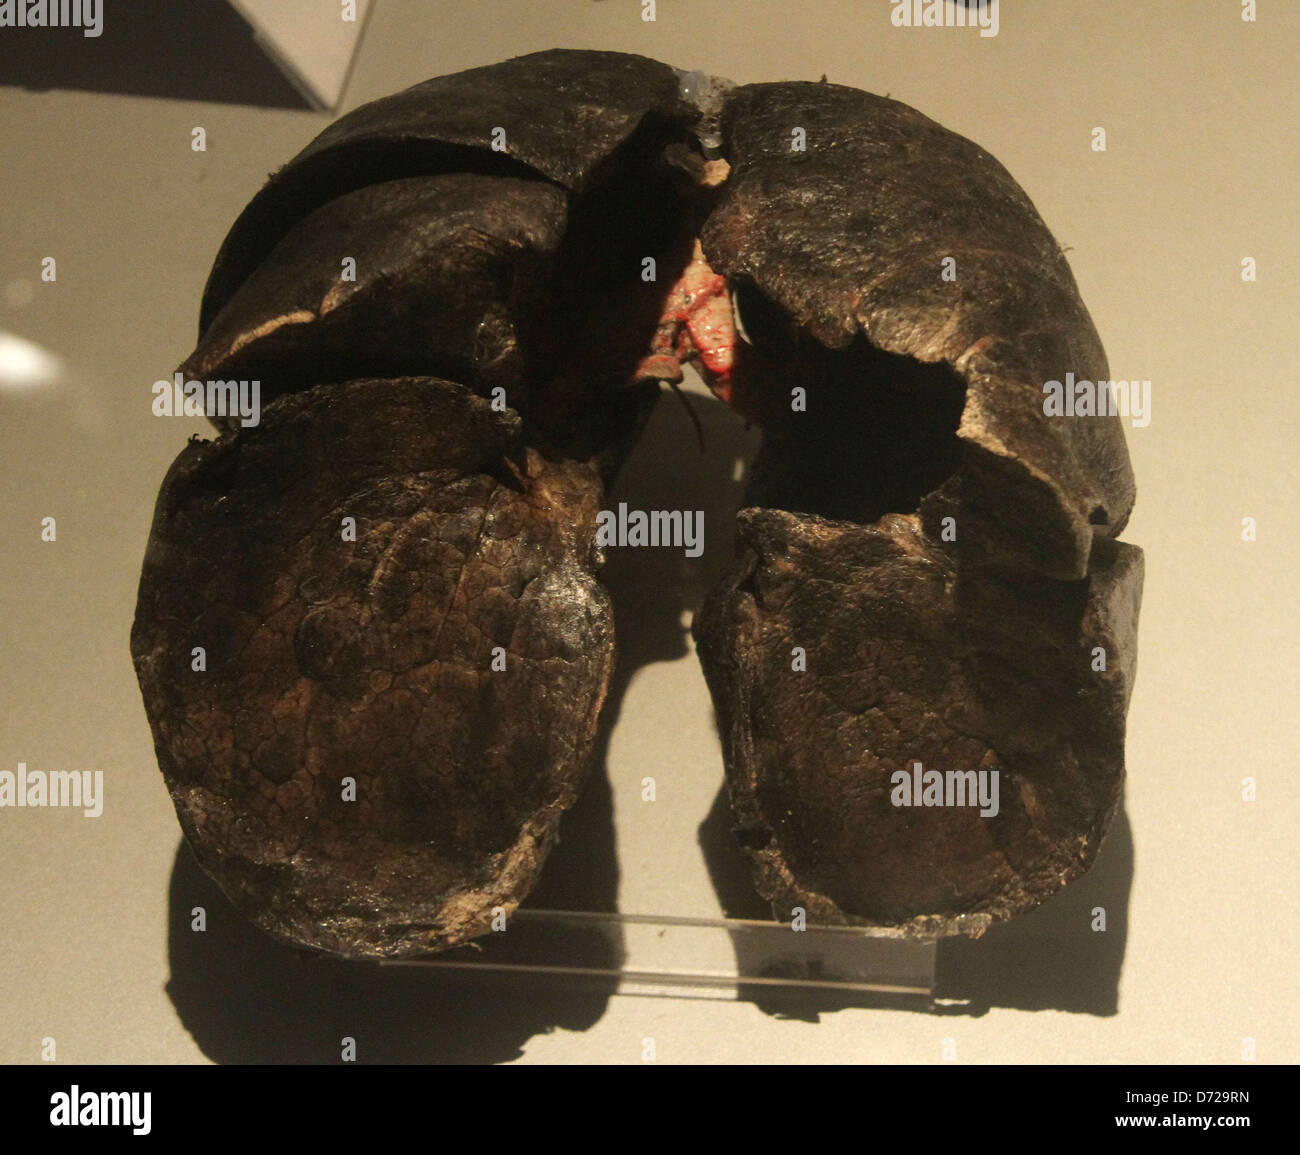 Discovery 2018 Black >> Smokers Lungs Stock Photos & Smokers Lungs Stock Images - Alamy